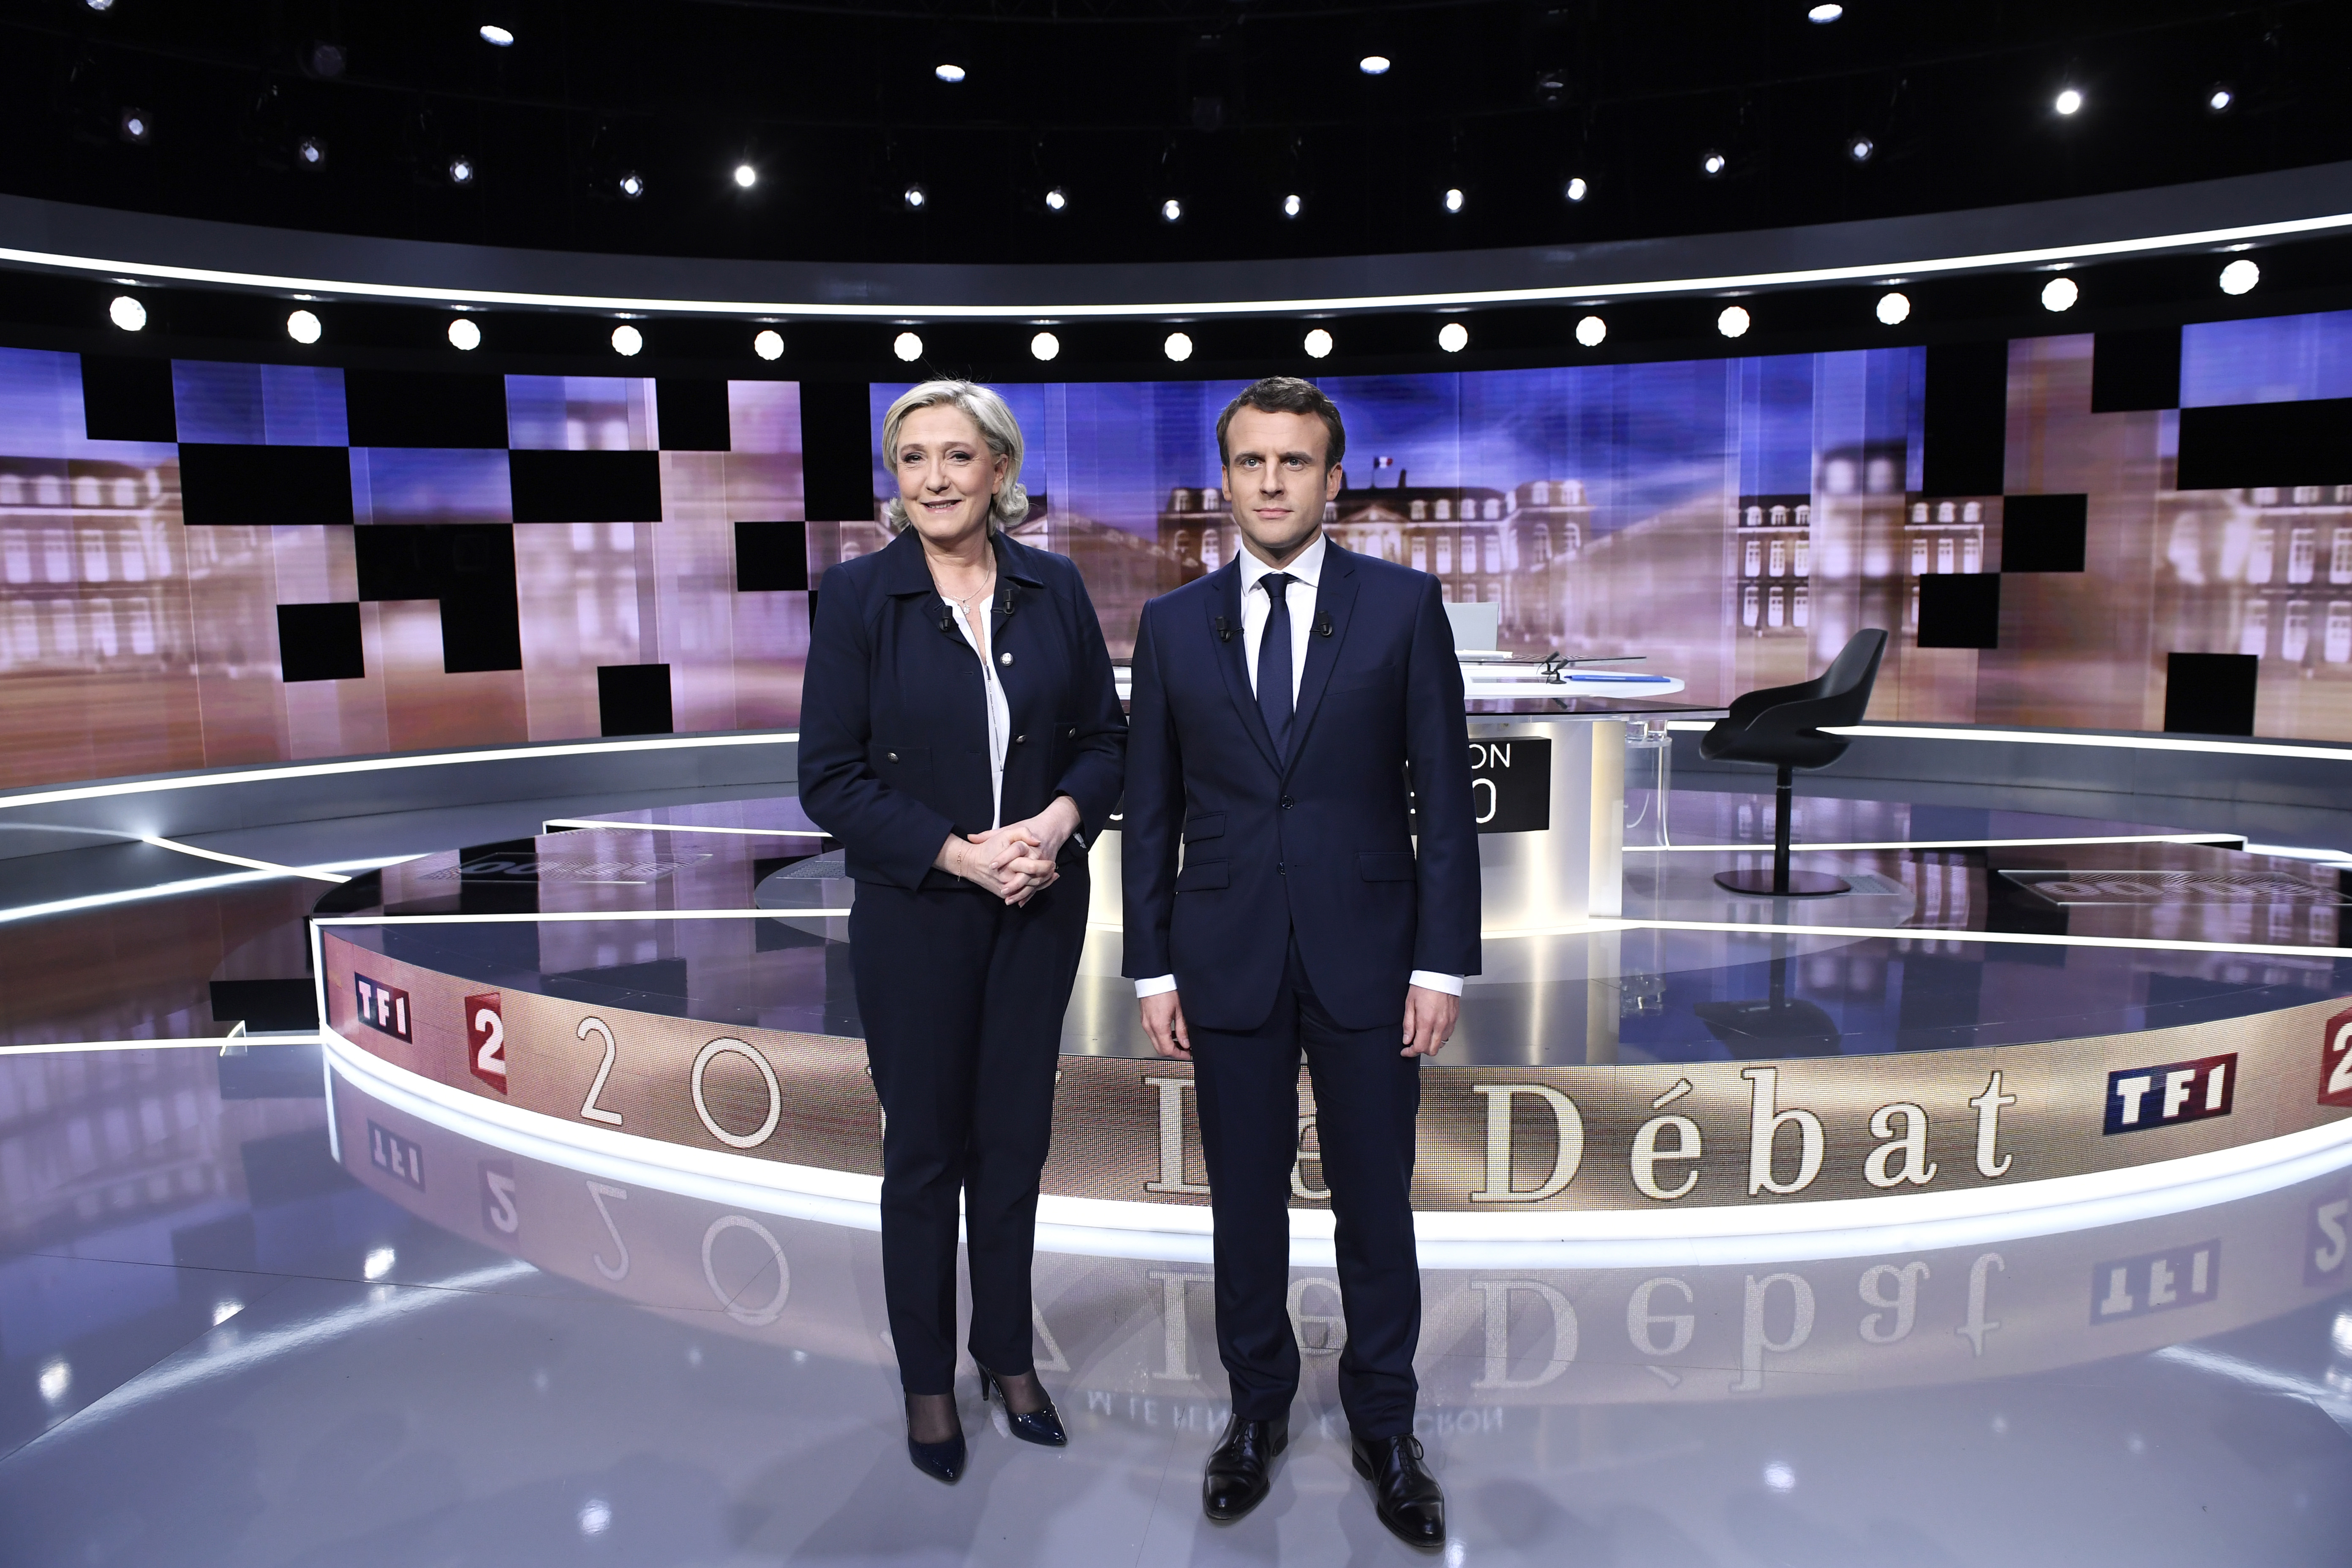 Candidates for the 2017 presidential election, Emmanuel Macron (R), head of the political movement En Marche !, or Onwards !, and Marine Le Pen, of the French National Front (FN) party, pose prior to the start of a live prime-time debate in the studios of French television station France 2, and French private station TF1 in La Plaine-Saint-Denis, near Paris. REUTERS/Eric Feferberg/Pool